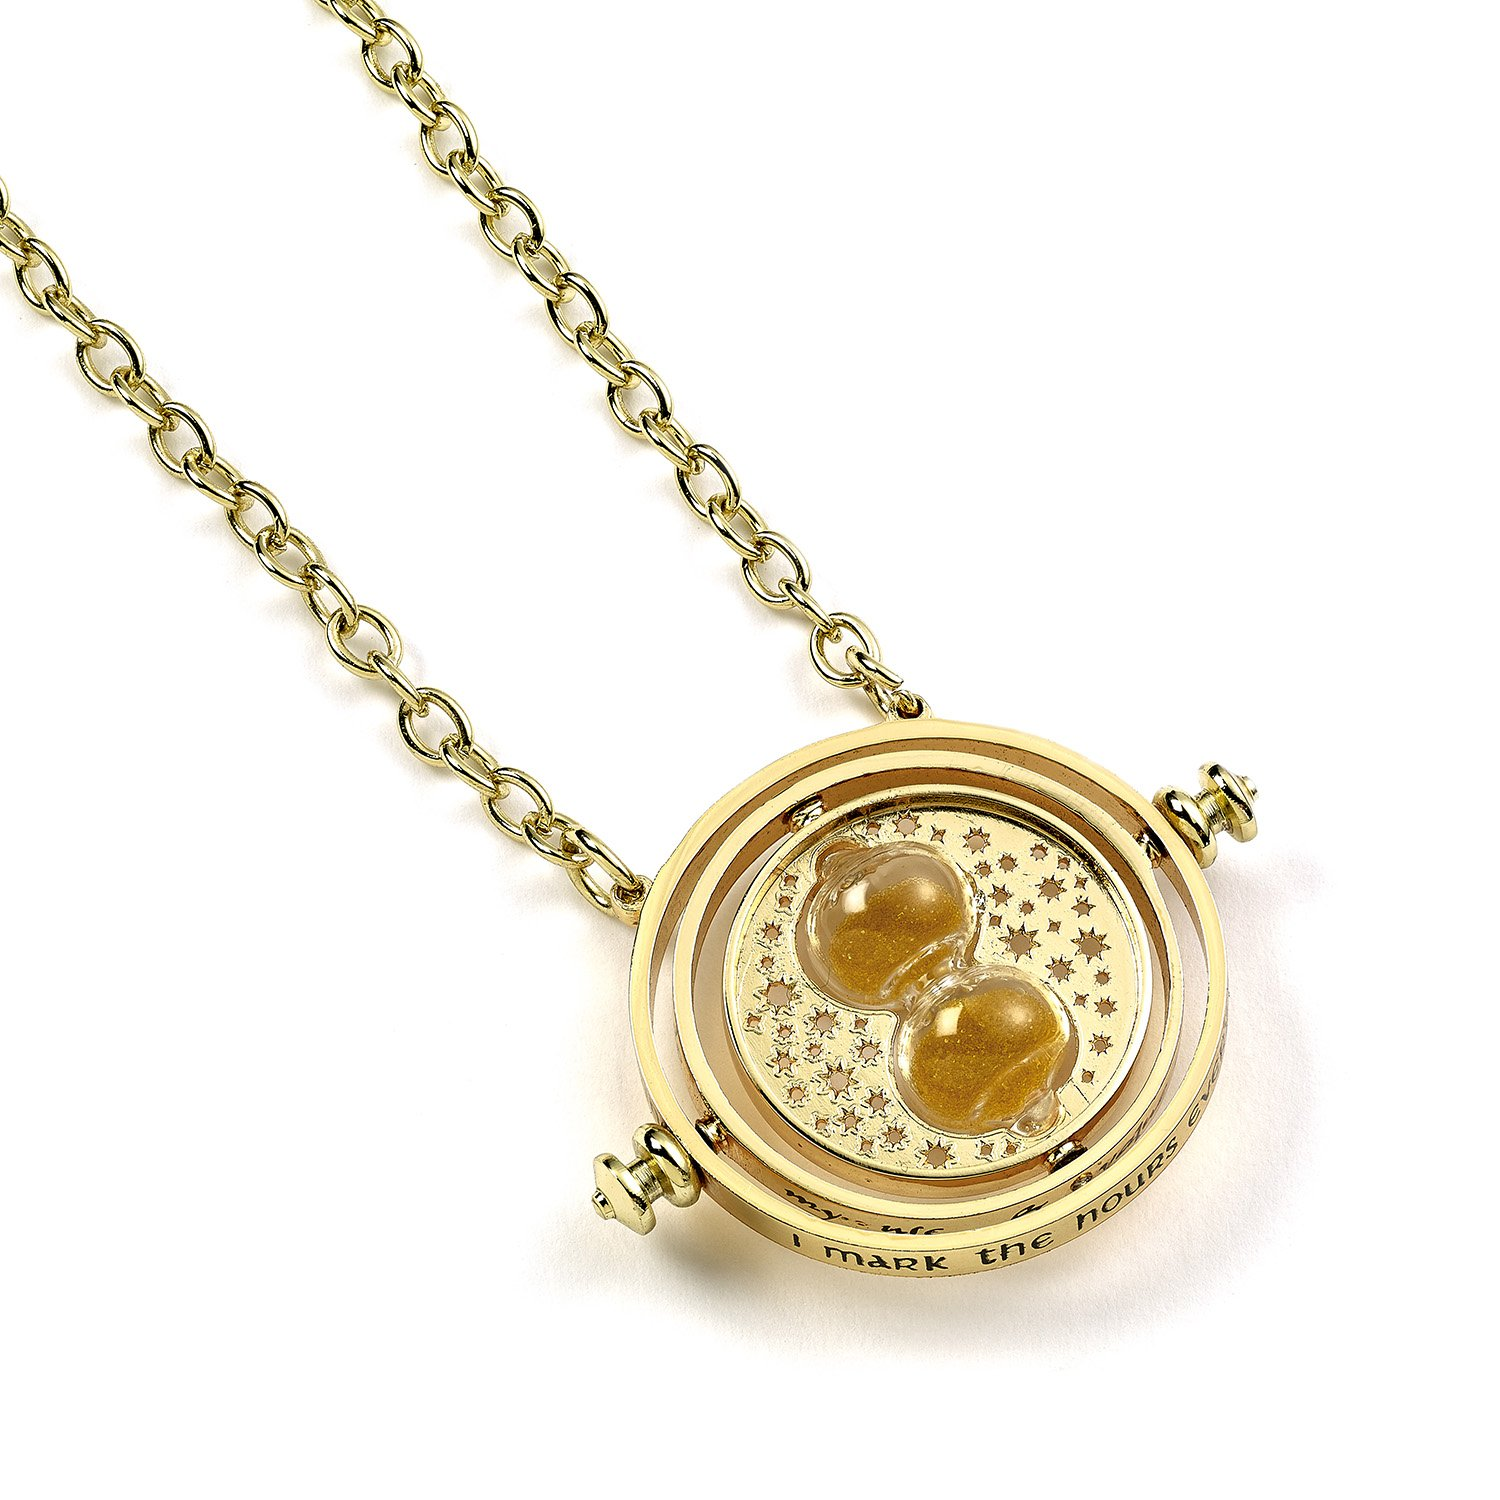 Official Harry Potter Jewelry Spinning Time Turner Necklace